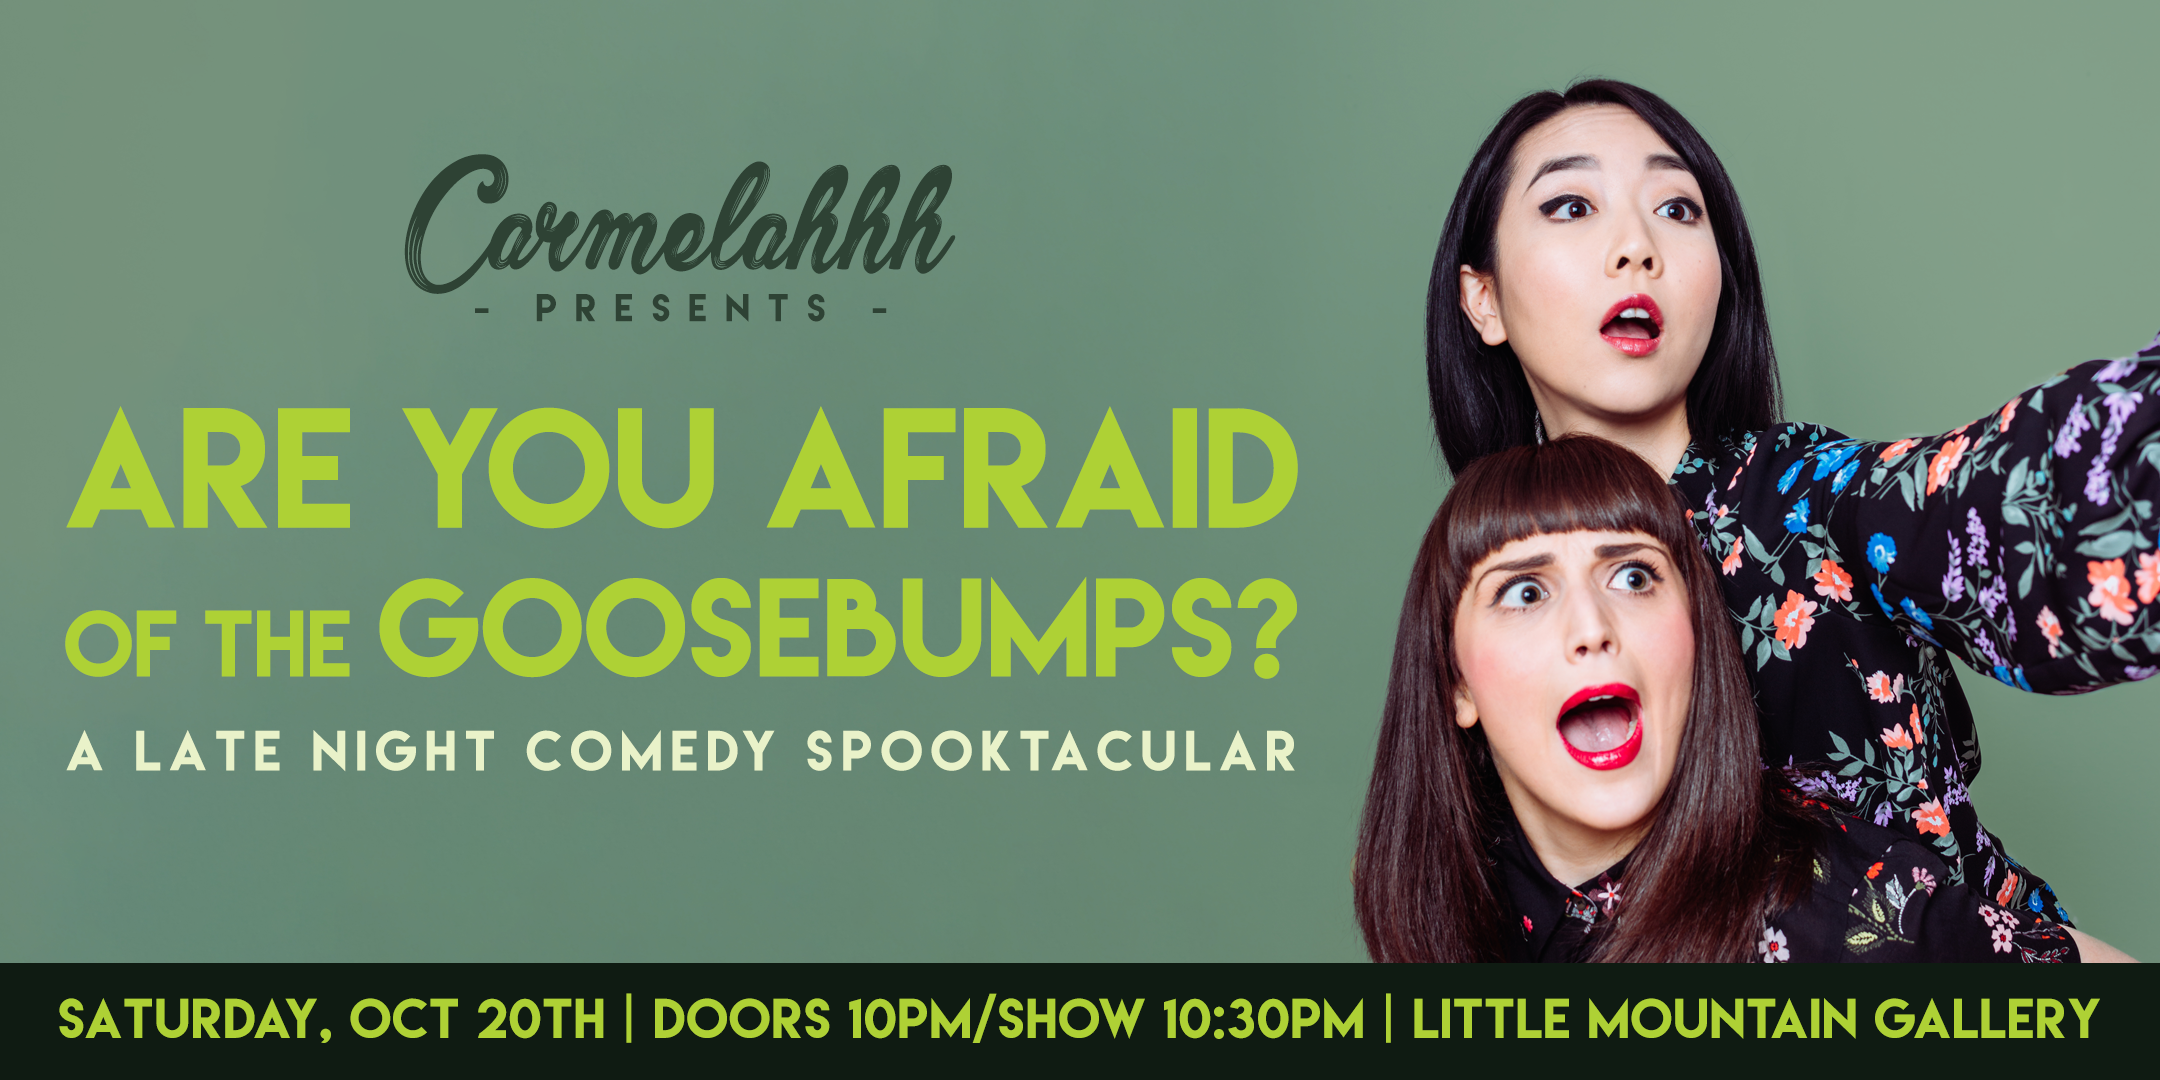 Carmelahhh Presents: Are You Afraid of the Goosebumps?